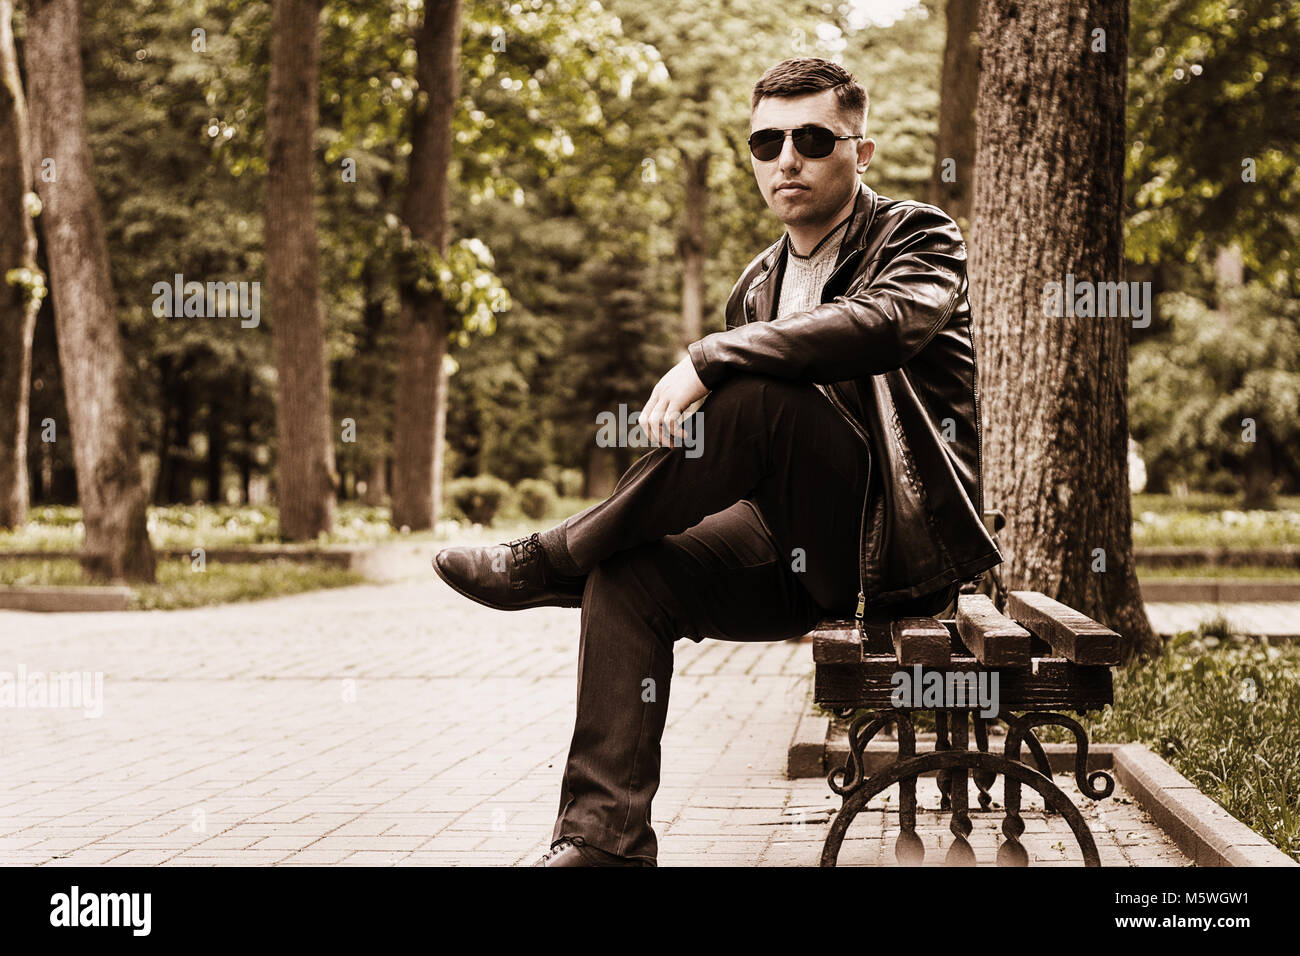 Tinting a photo in brown tones with a young man in a park in sunglasses and a leather jacket - Stock Image